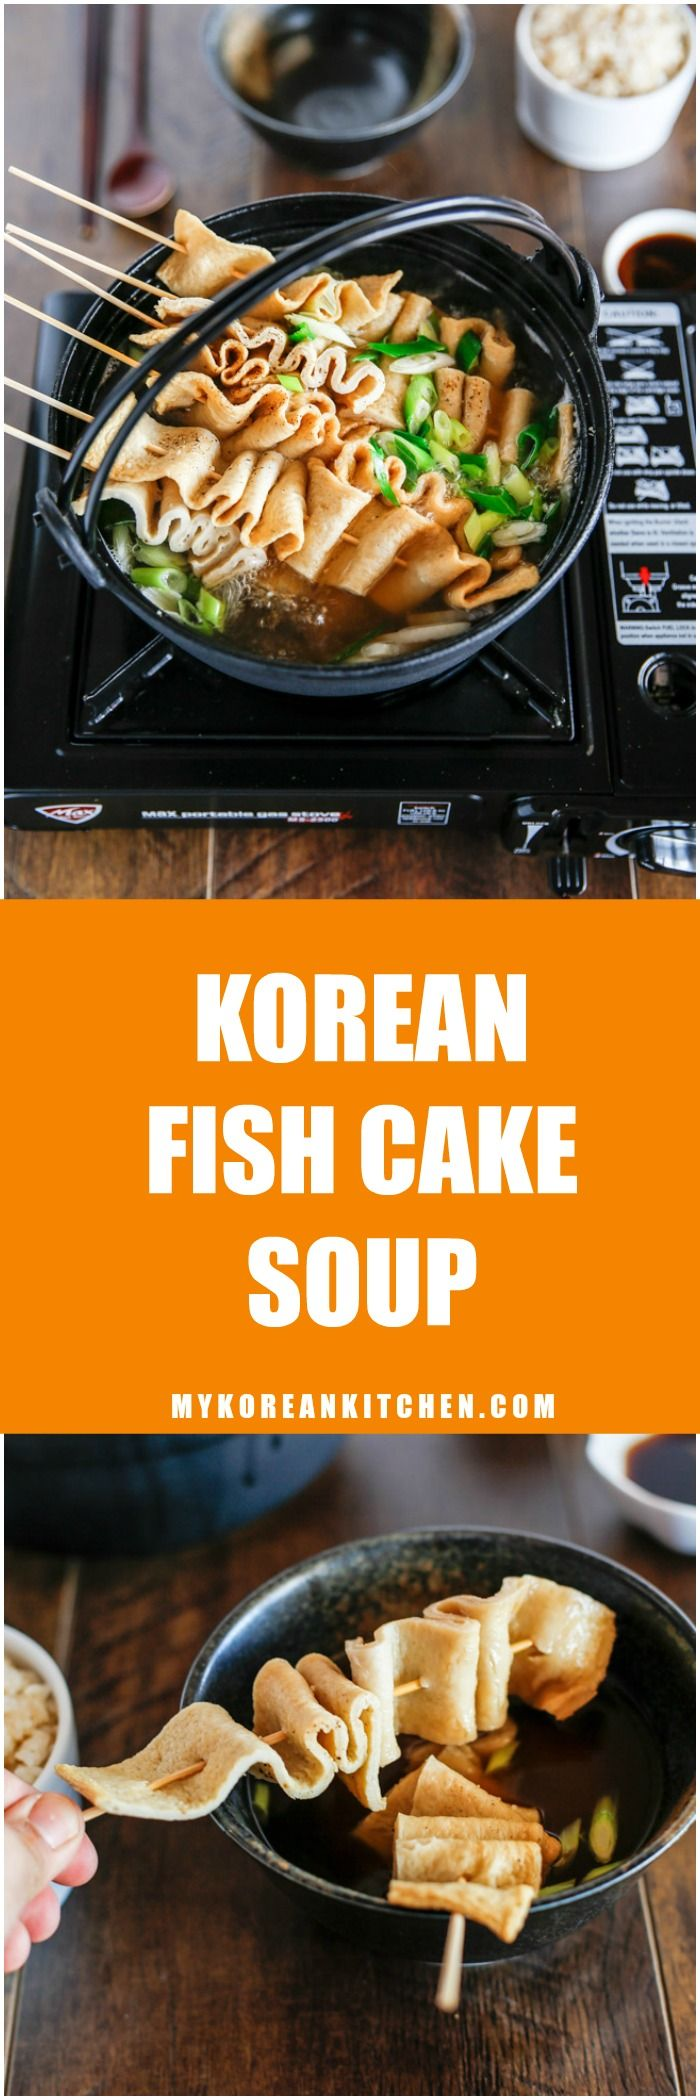 Korean Fish Cake Soup | MyKoreanKitchen.com